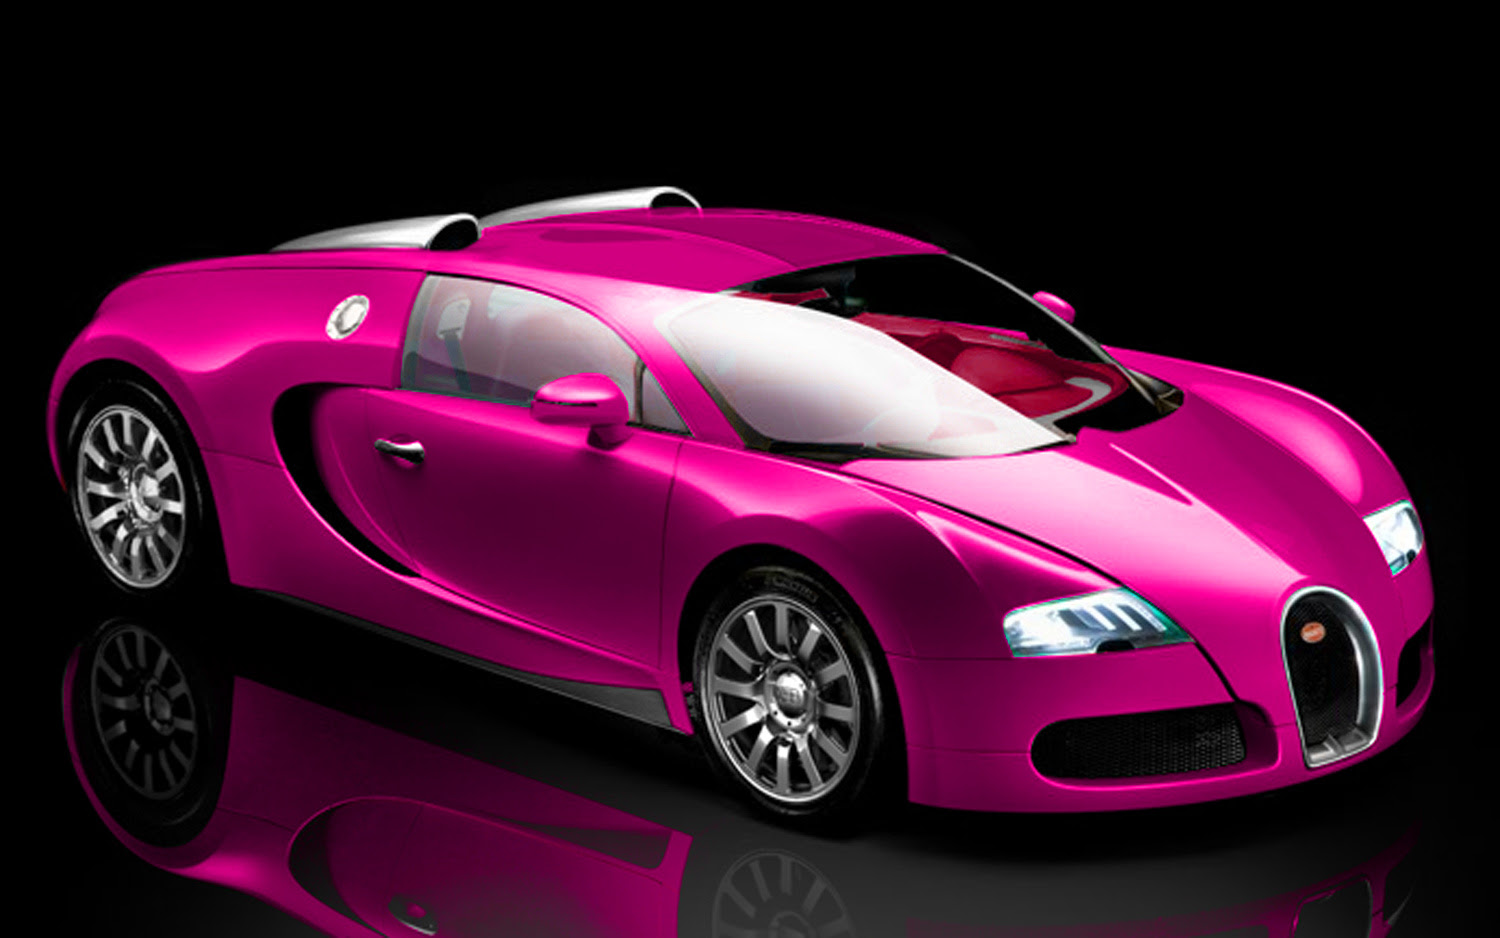 Bugatti Veyron Cost 17 Free Hd Car Wallpaper  CarWallpapersForDesktop.org